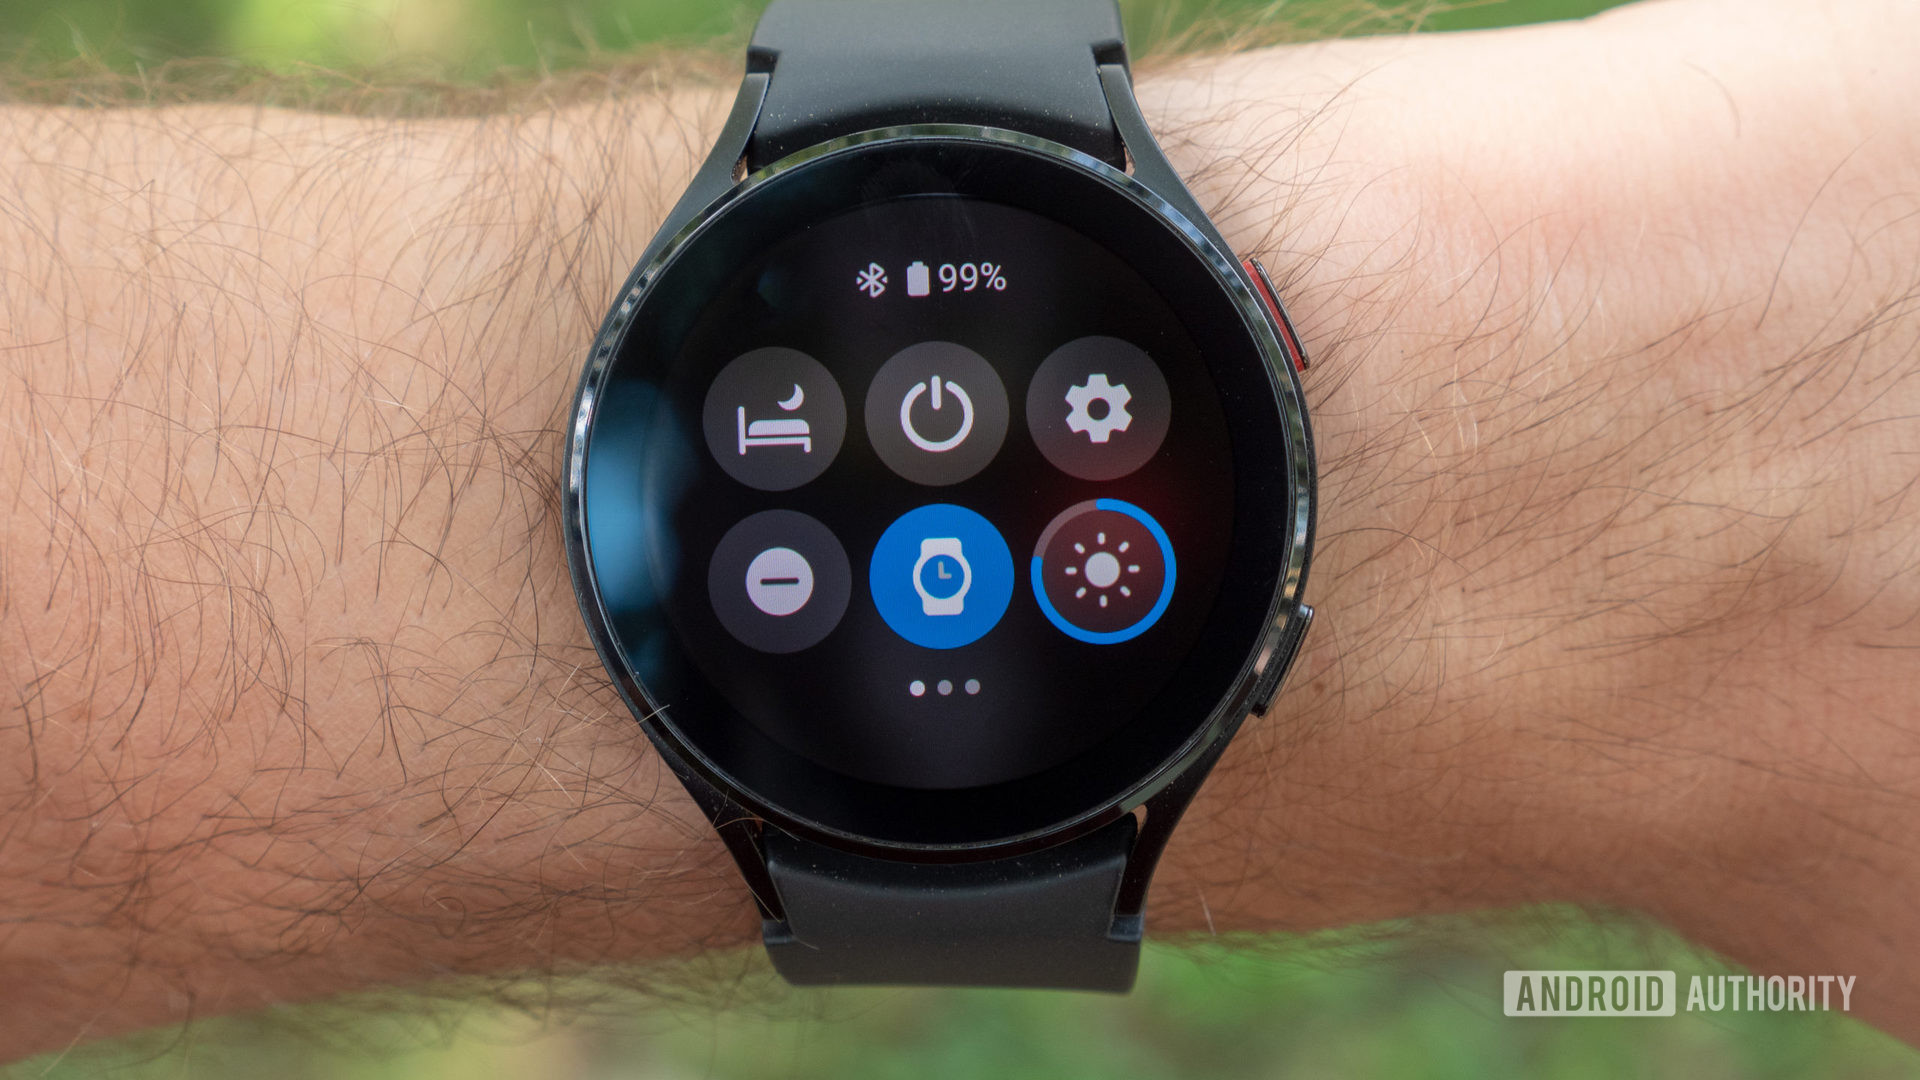 The Samsung Galaxy Watch 4 showing Wear OS 3's quick settings.